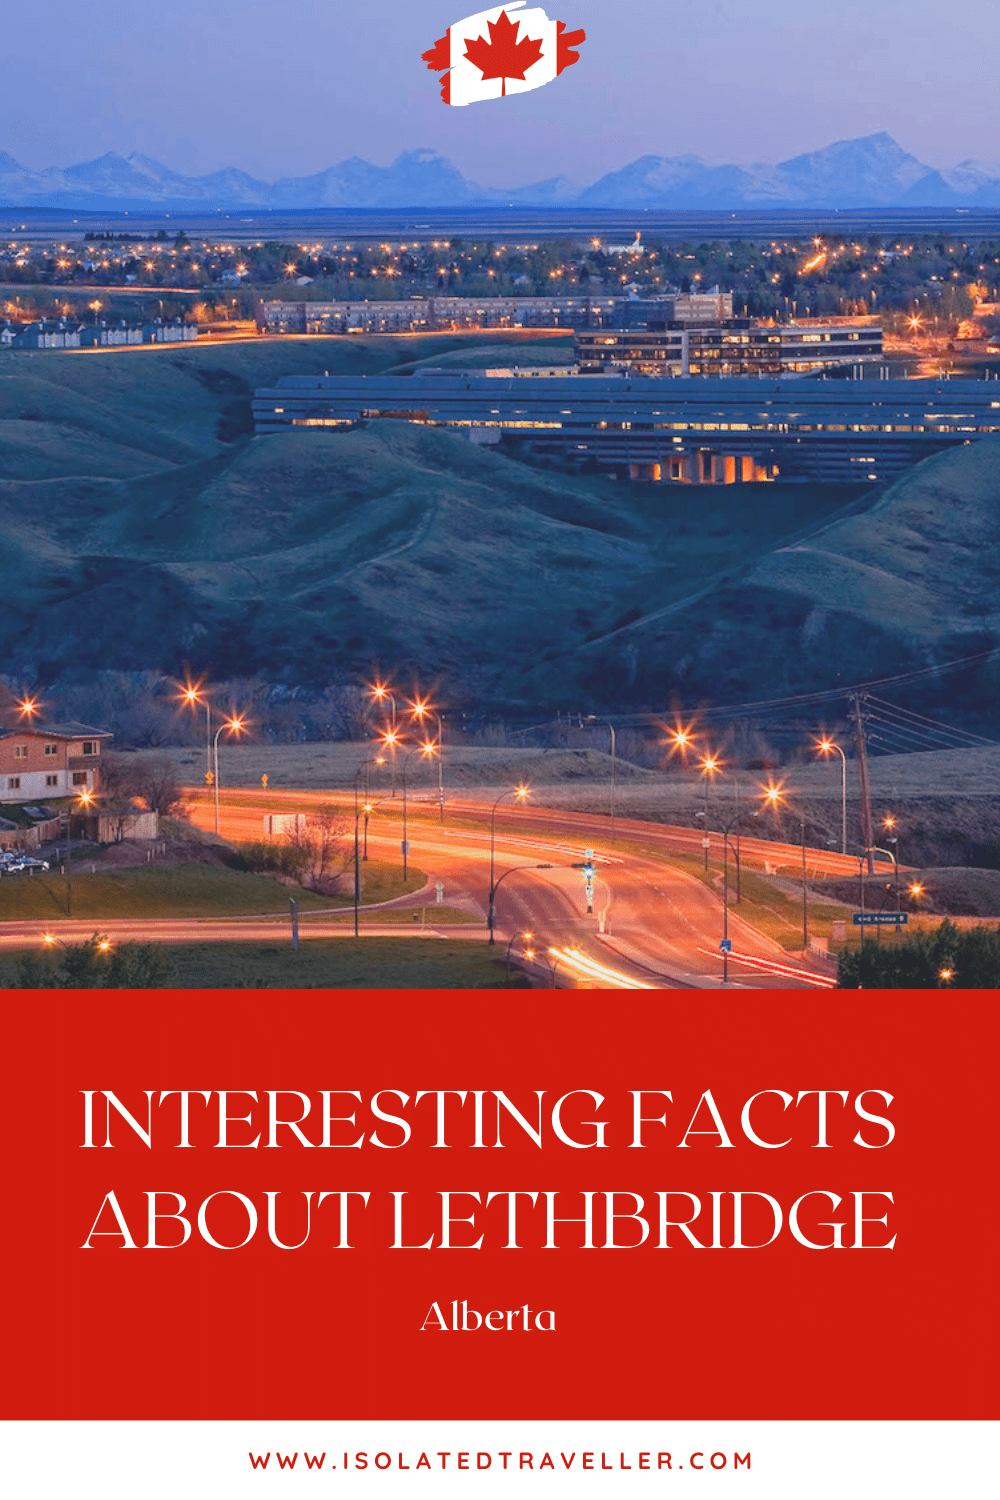 Facts About Lethbridge